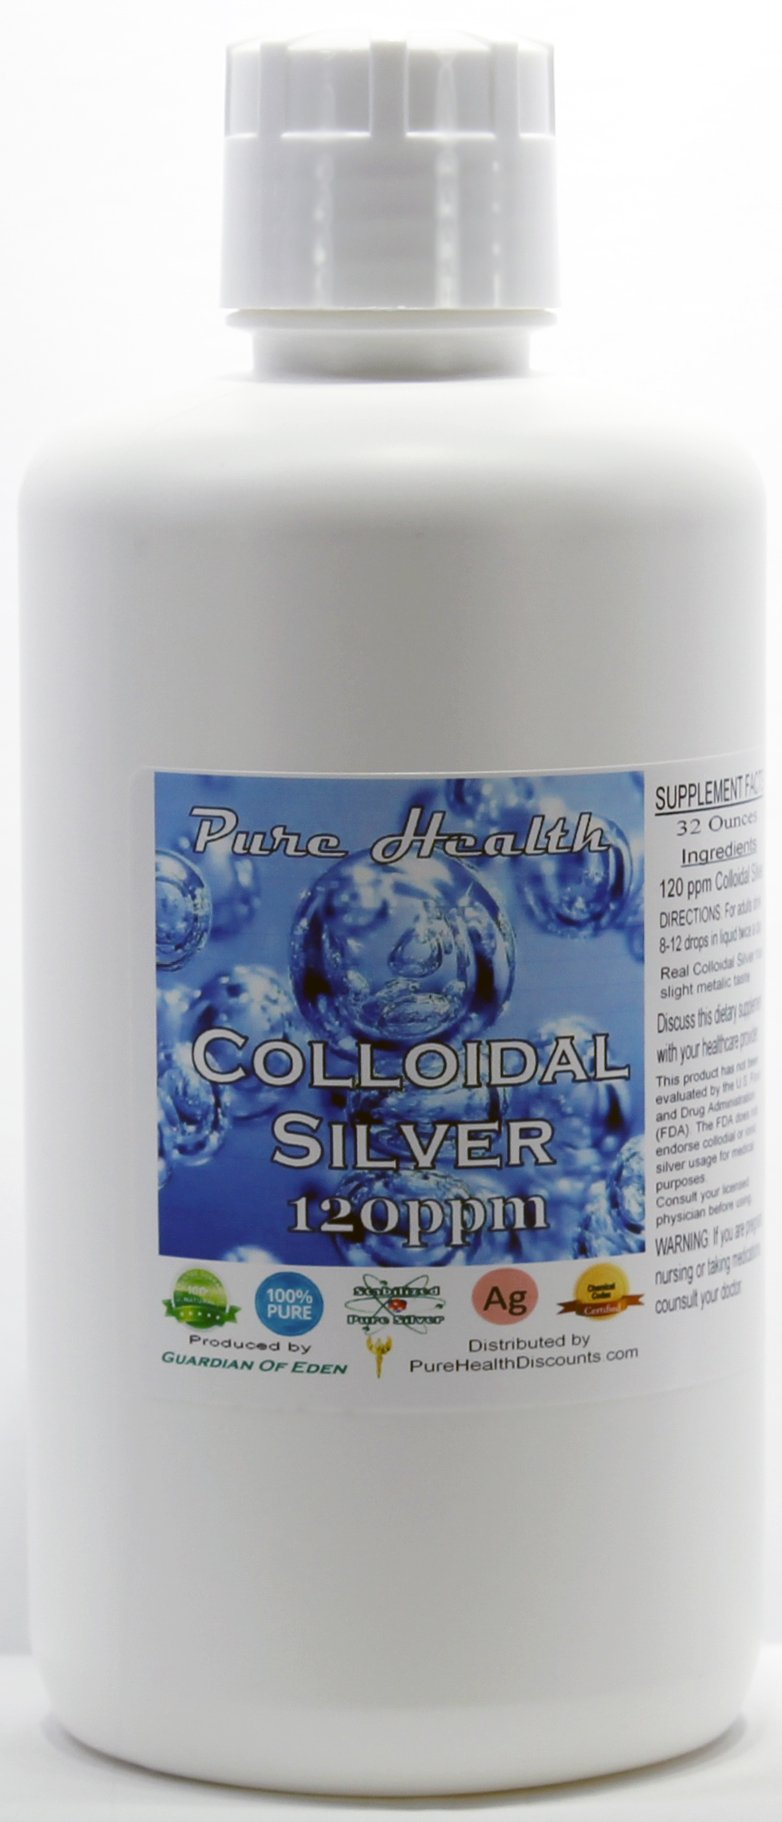 PHP 32 Ounce Concentrated Colloidal Silver 120ppm + Free Filled Dropper Bottle; Shipped Fast. Lab Tested. See pics for Report. by Purehealthdiscounts